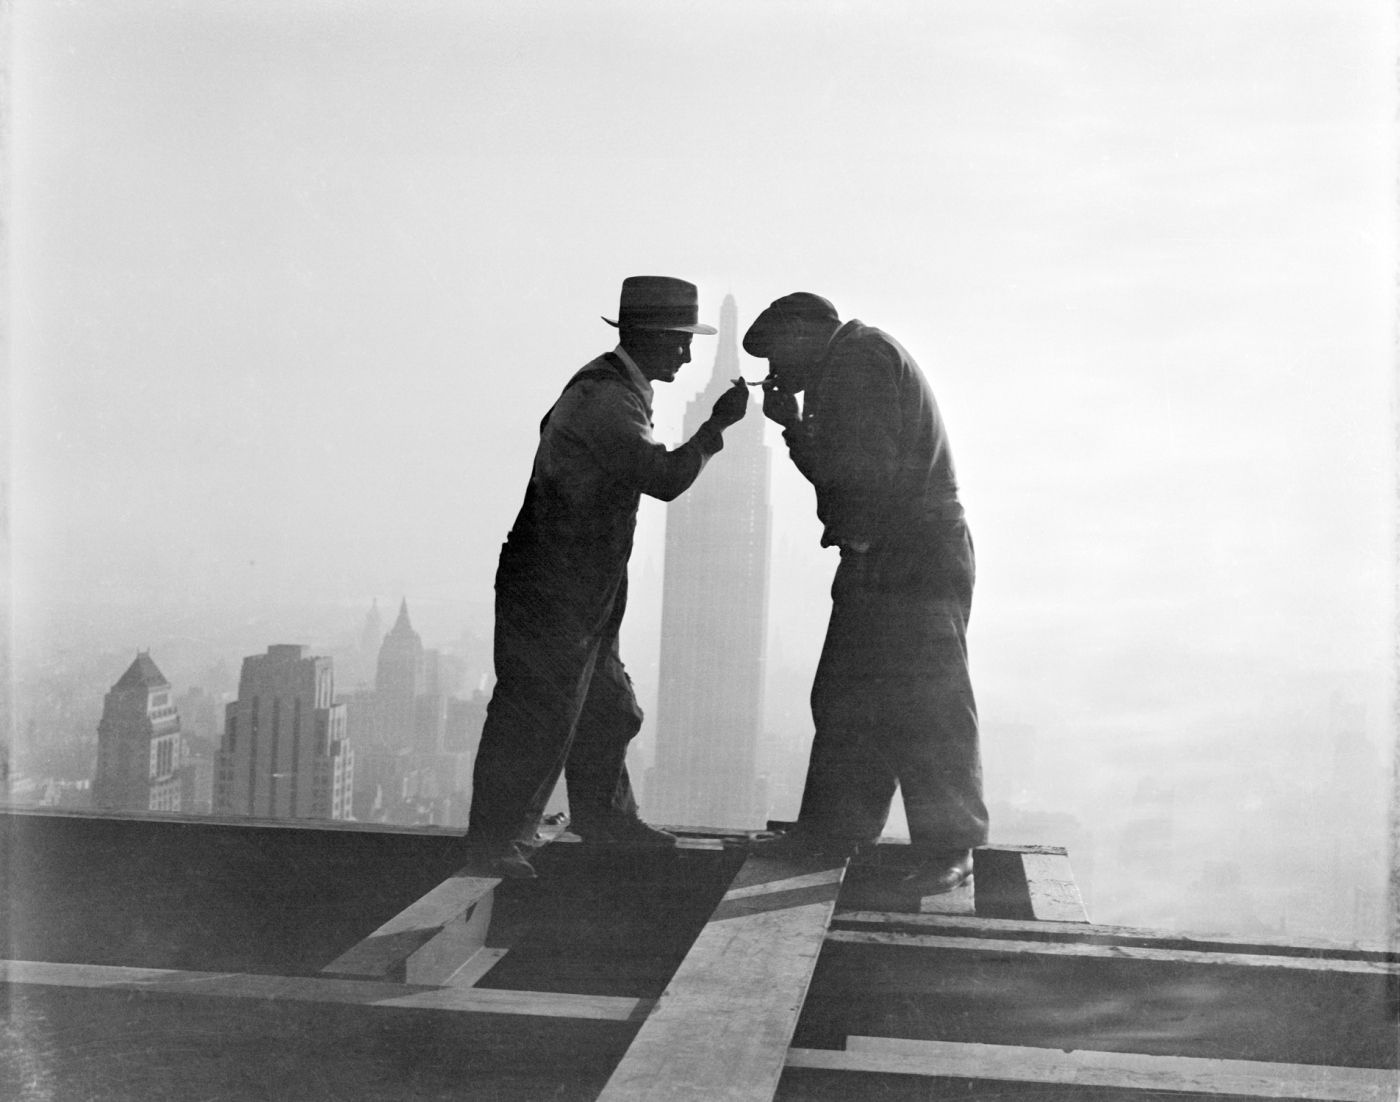 Two workmen share a cigarette atop the RCA Building in Rockefeller Center in front of the Empire State Building in New York City, on Dec. 2, 1932.